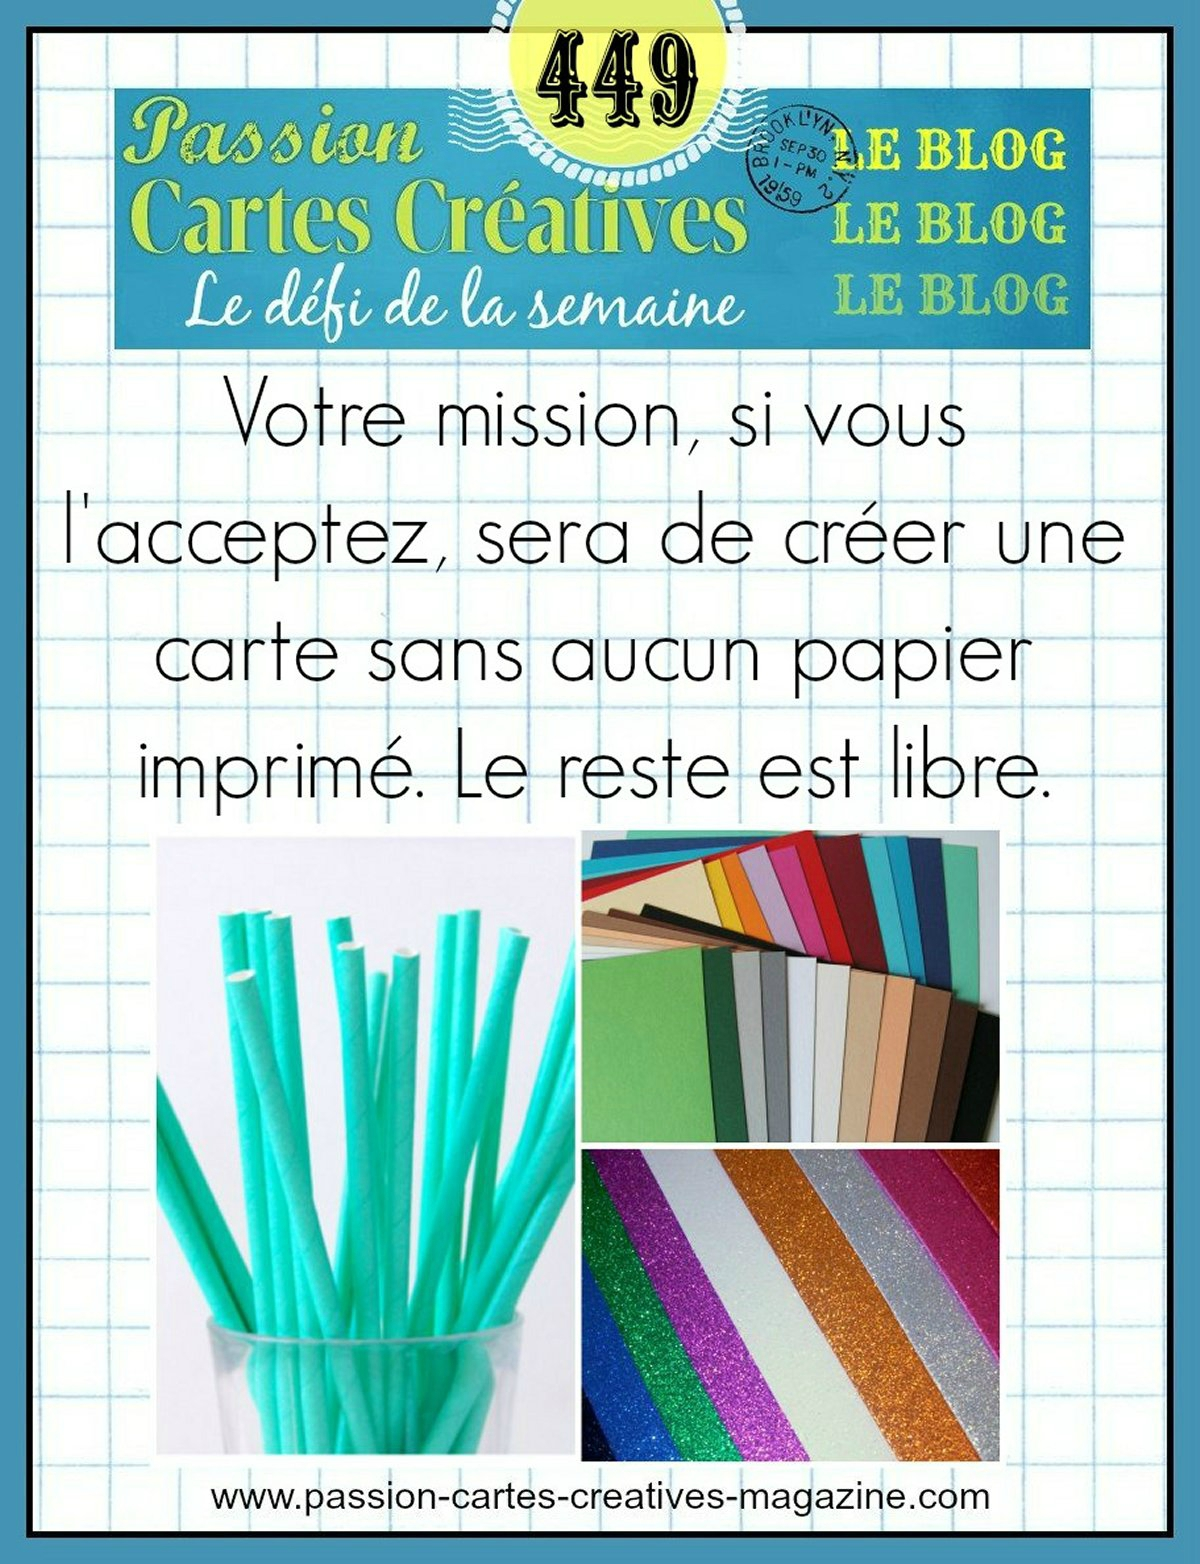 Defi 449 Passion carte creatives